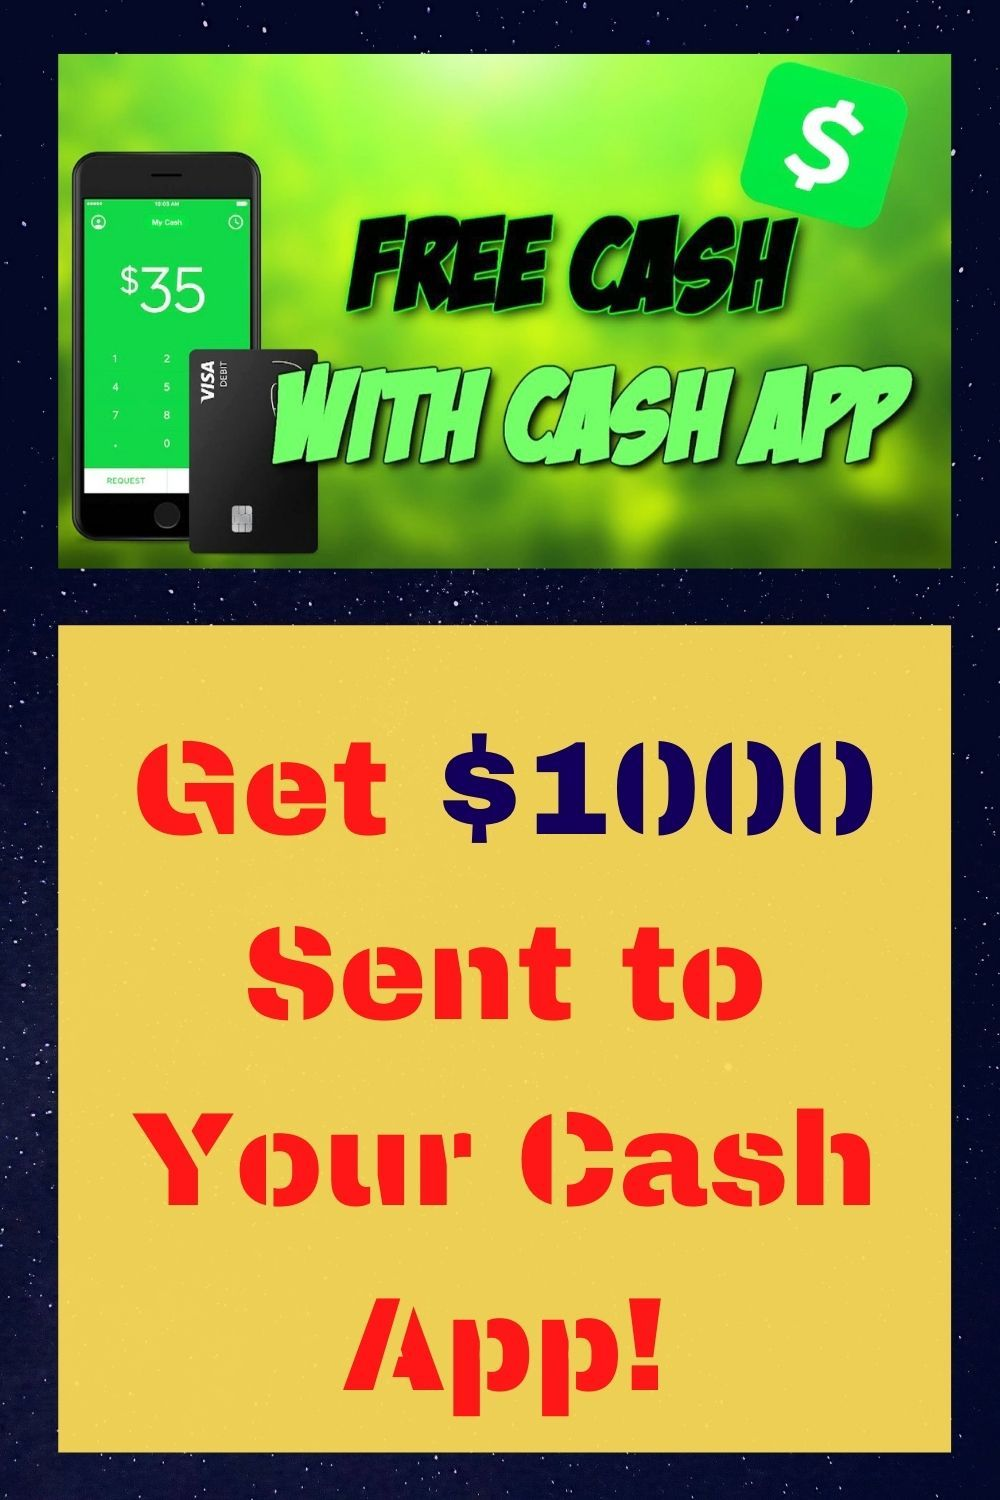 9c441a21a6063011a2d92c40d718c5bf - How To Get Free Money Transferred To Your Account